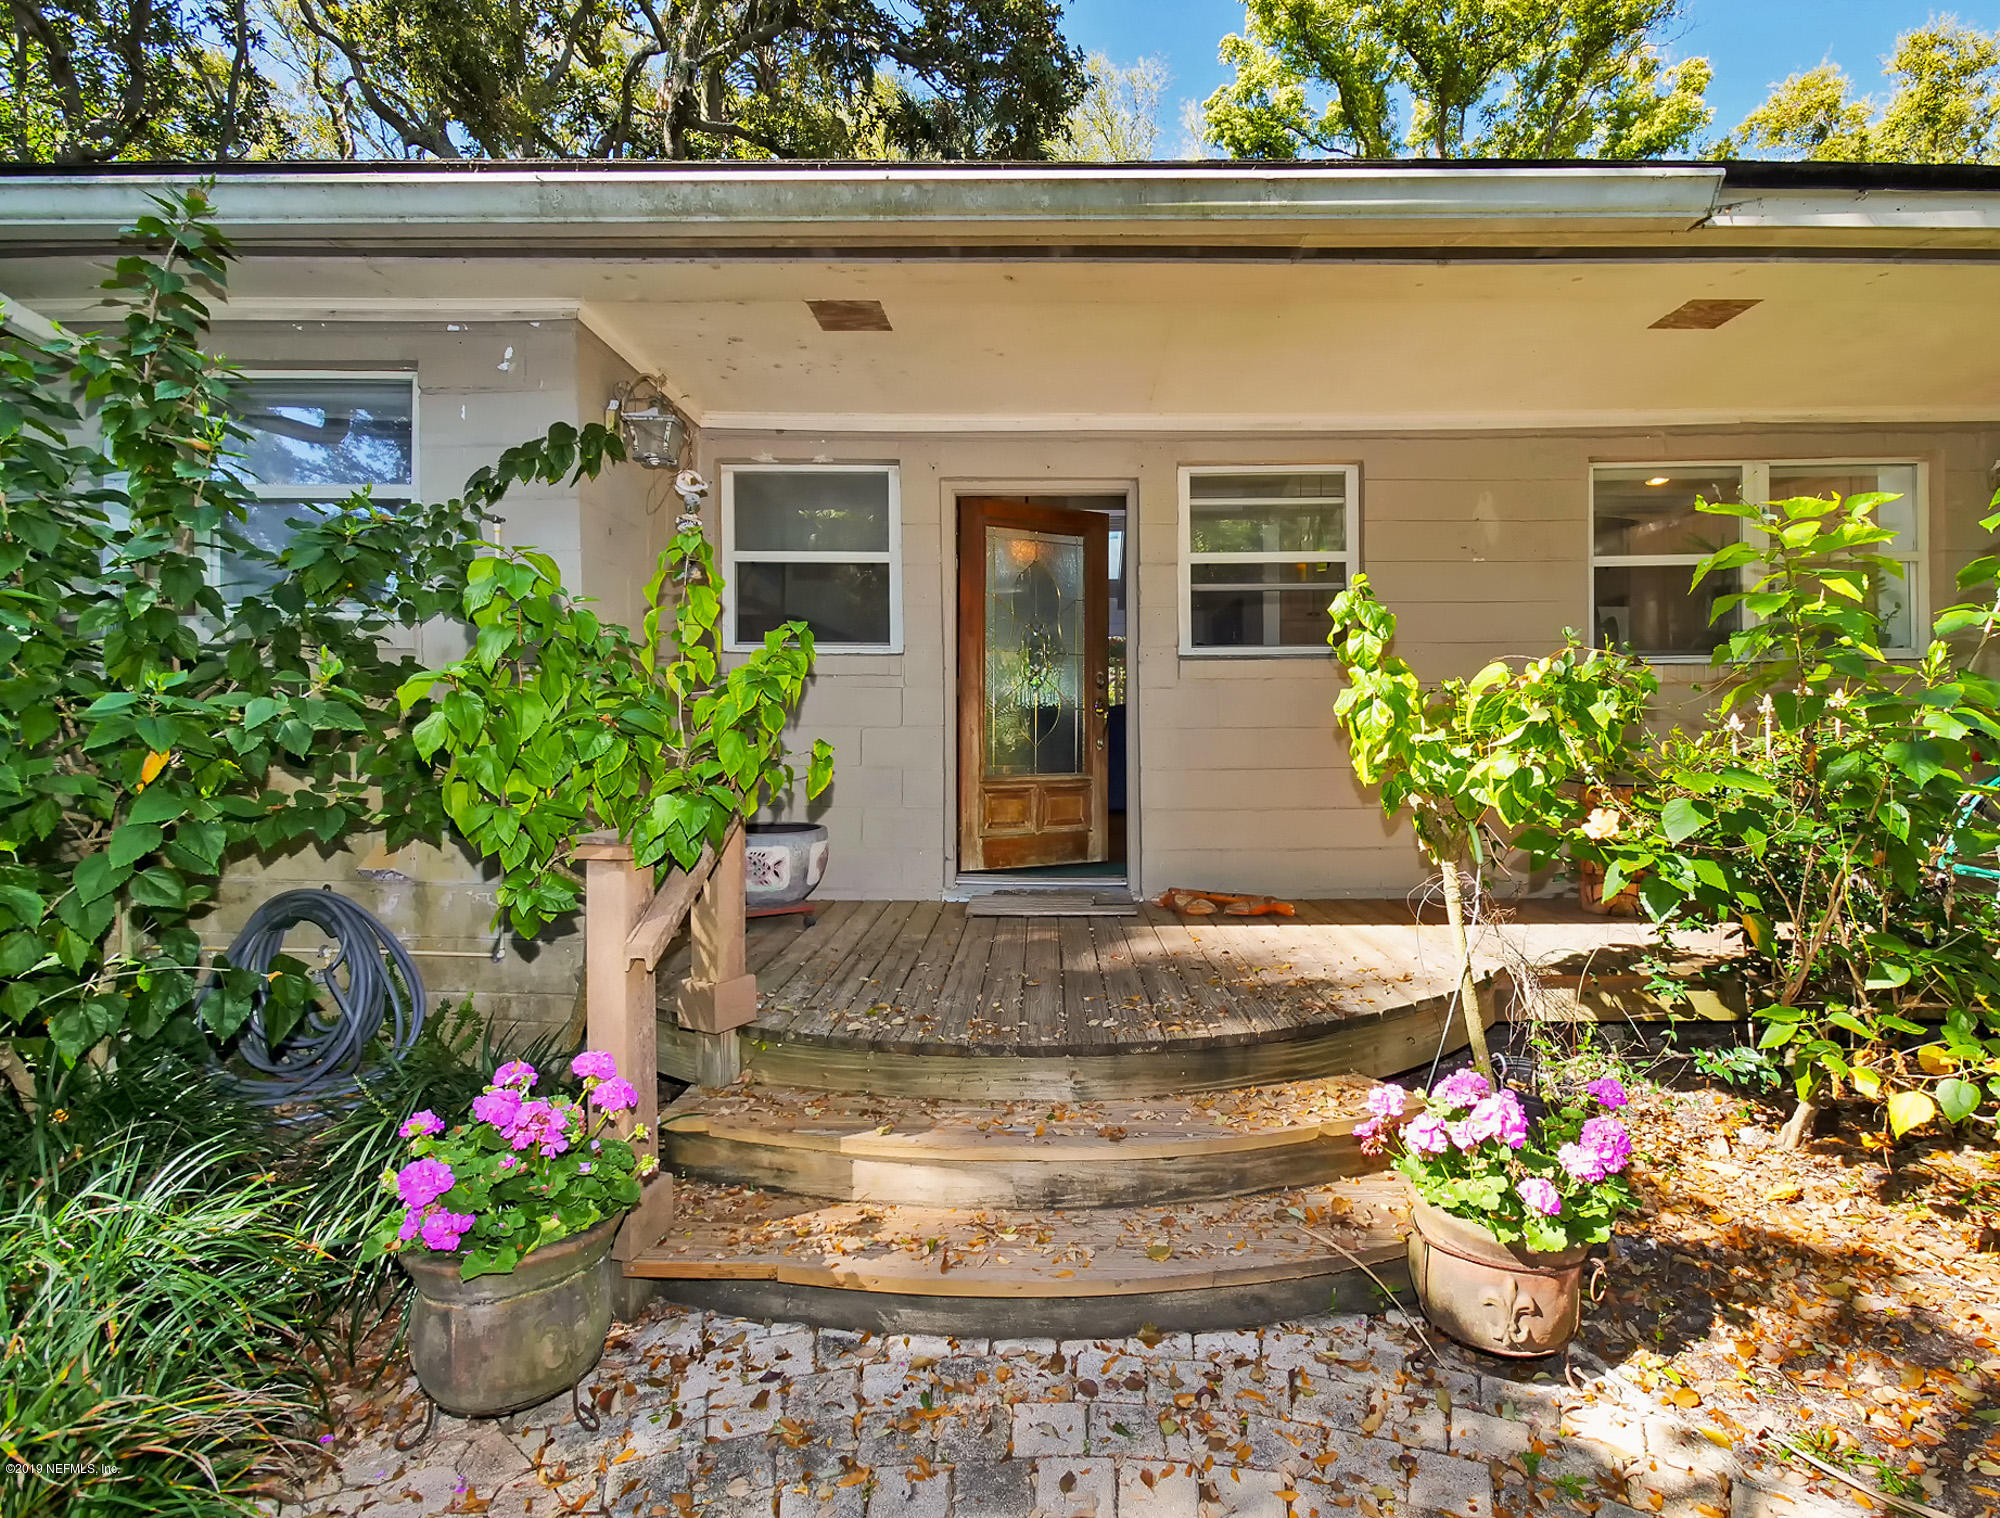 335 COUNTRY CLUB, ATLANTIC BEACH, FLORIDA 32233, 5 Bedrooms Bedrooms, ,3 BathroomsBathrooms,Residential - single family,For sale,COUNTRY CLUB,985924